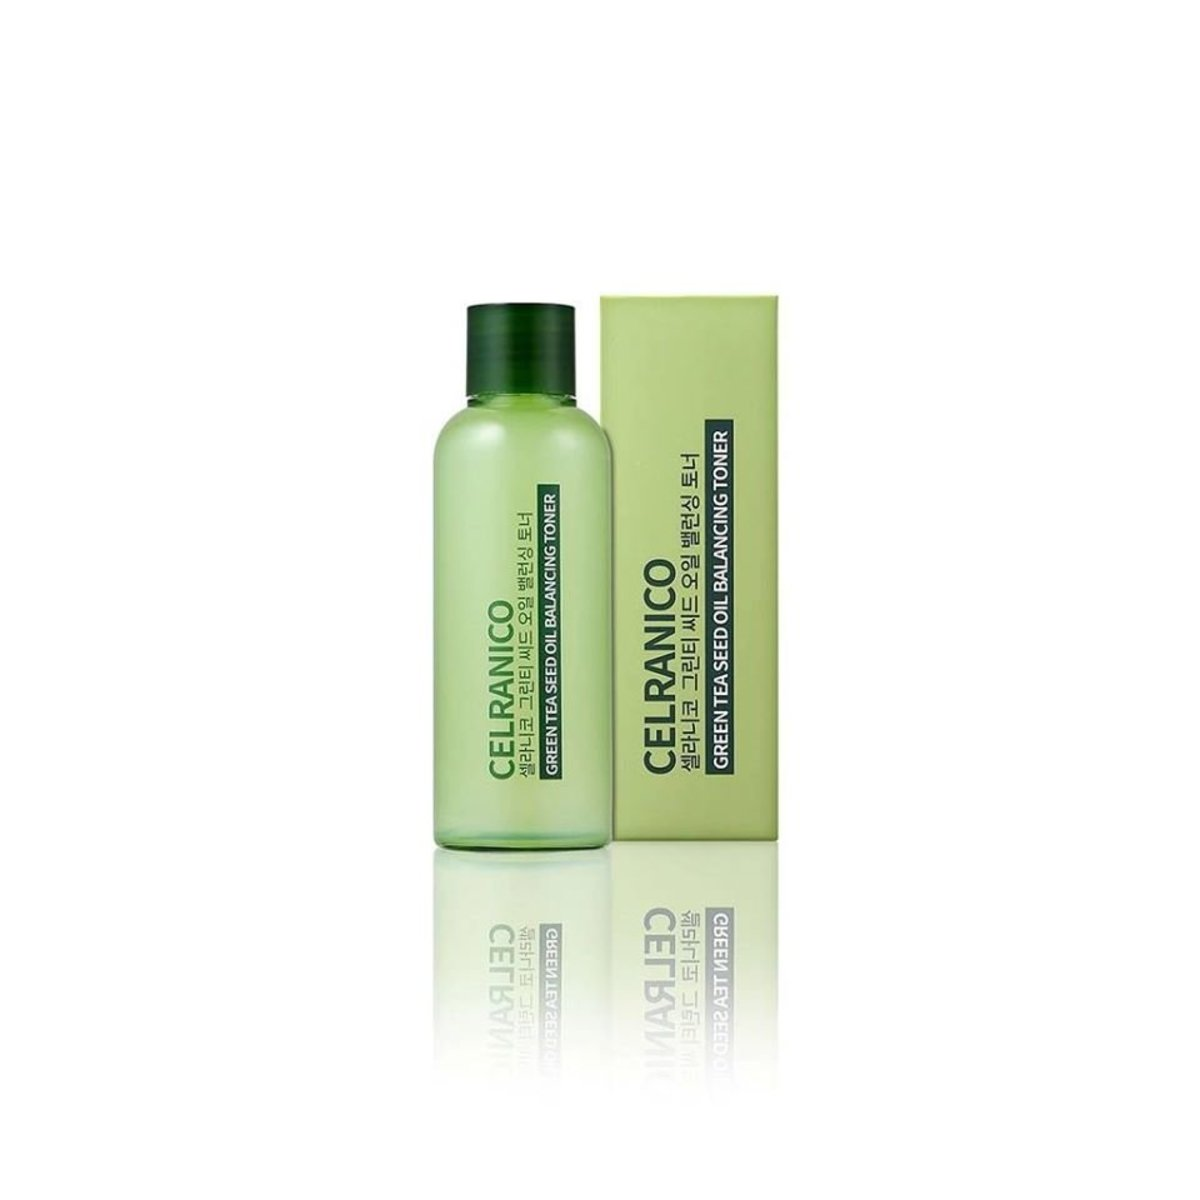 Celranico Green Tea Seed Oil Balancing Toner 180ml [Parallel Import Product]-Special Price